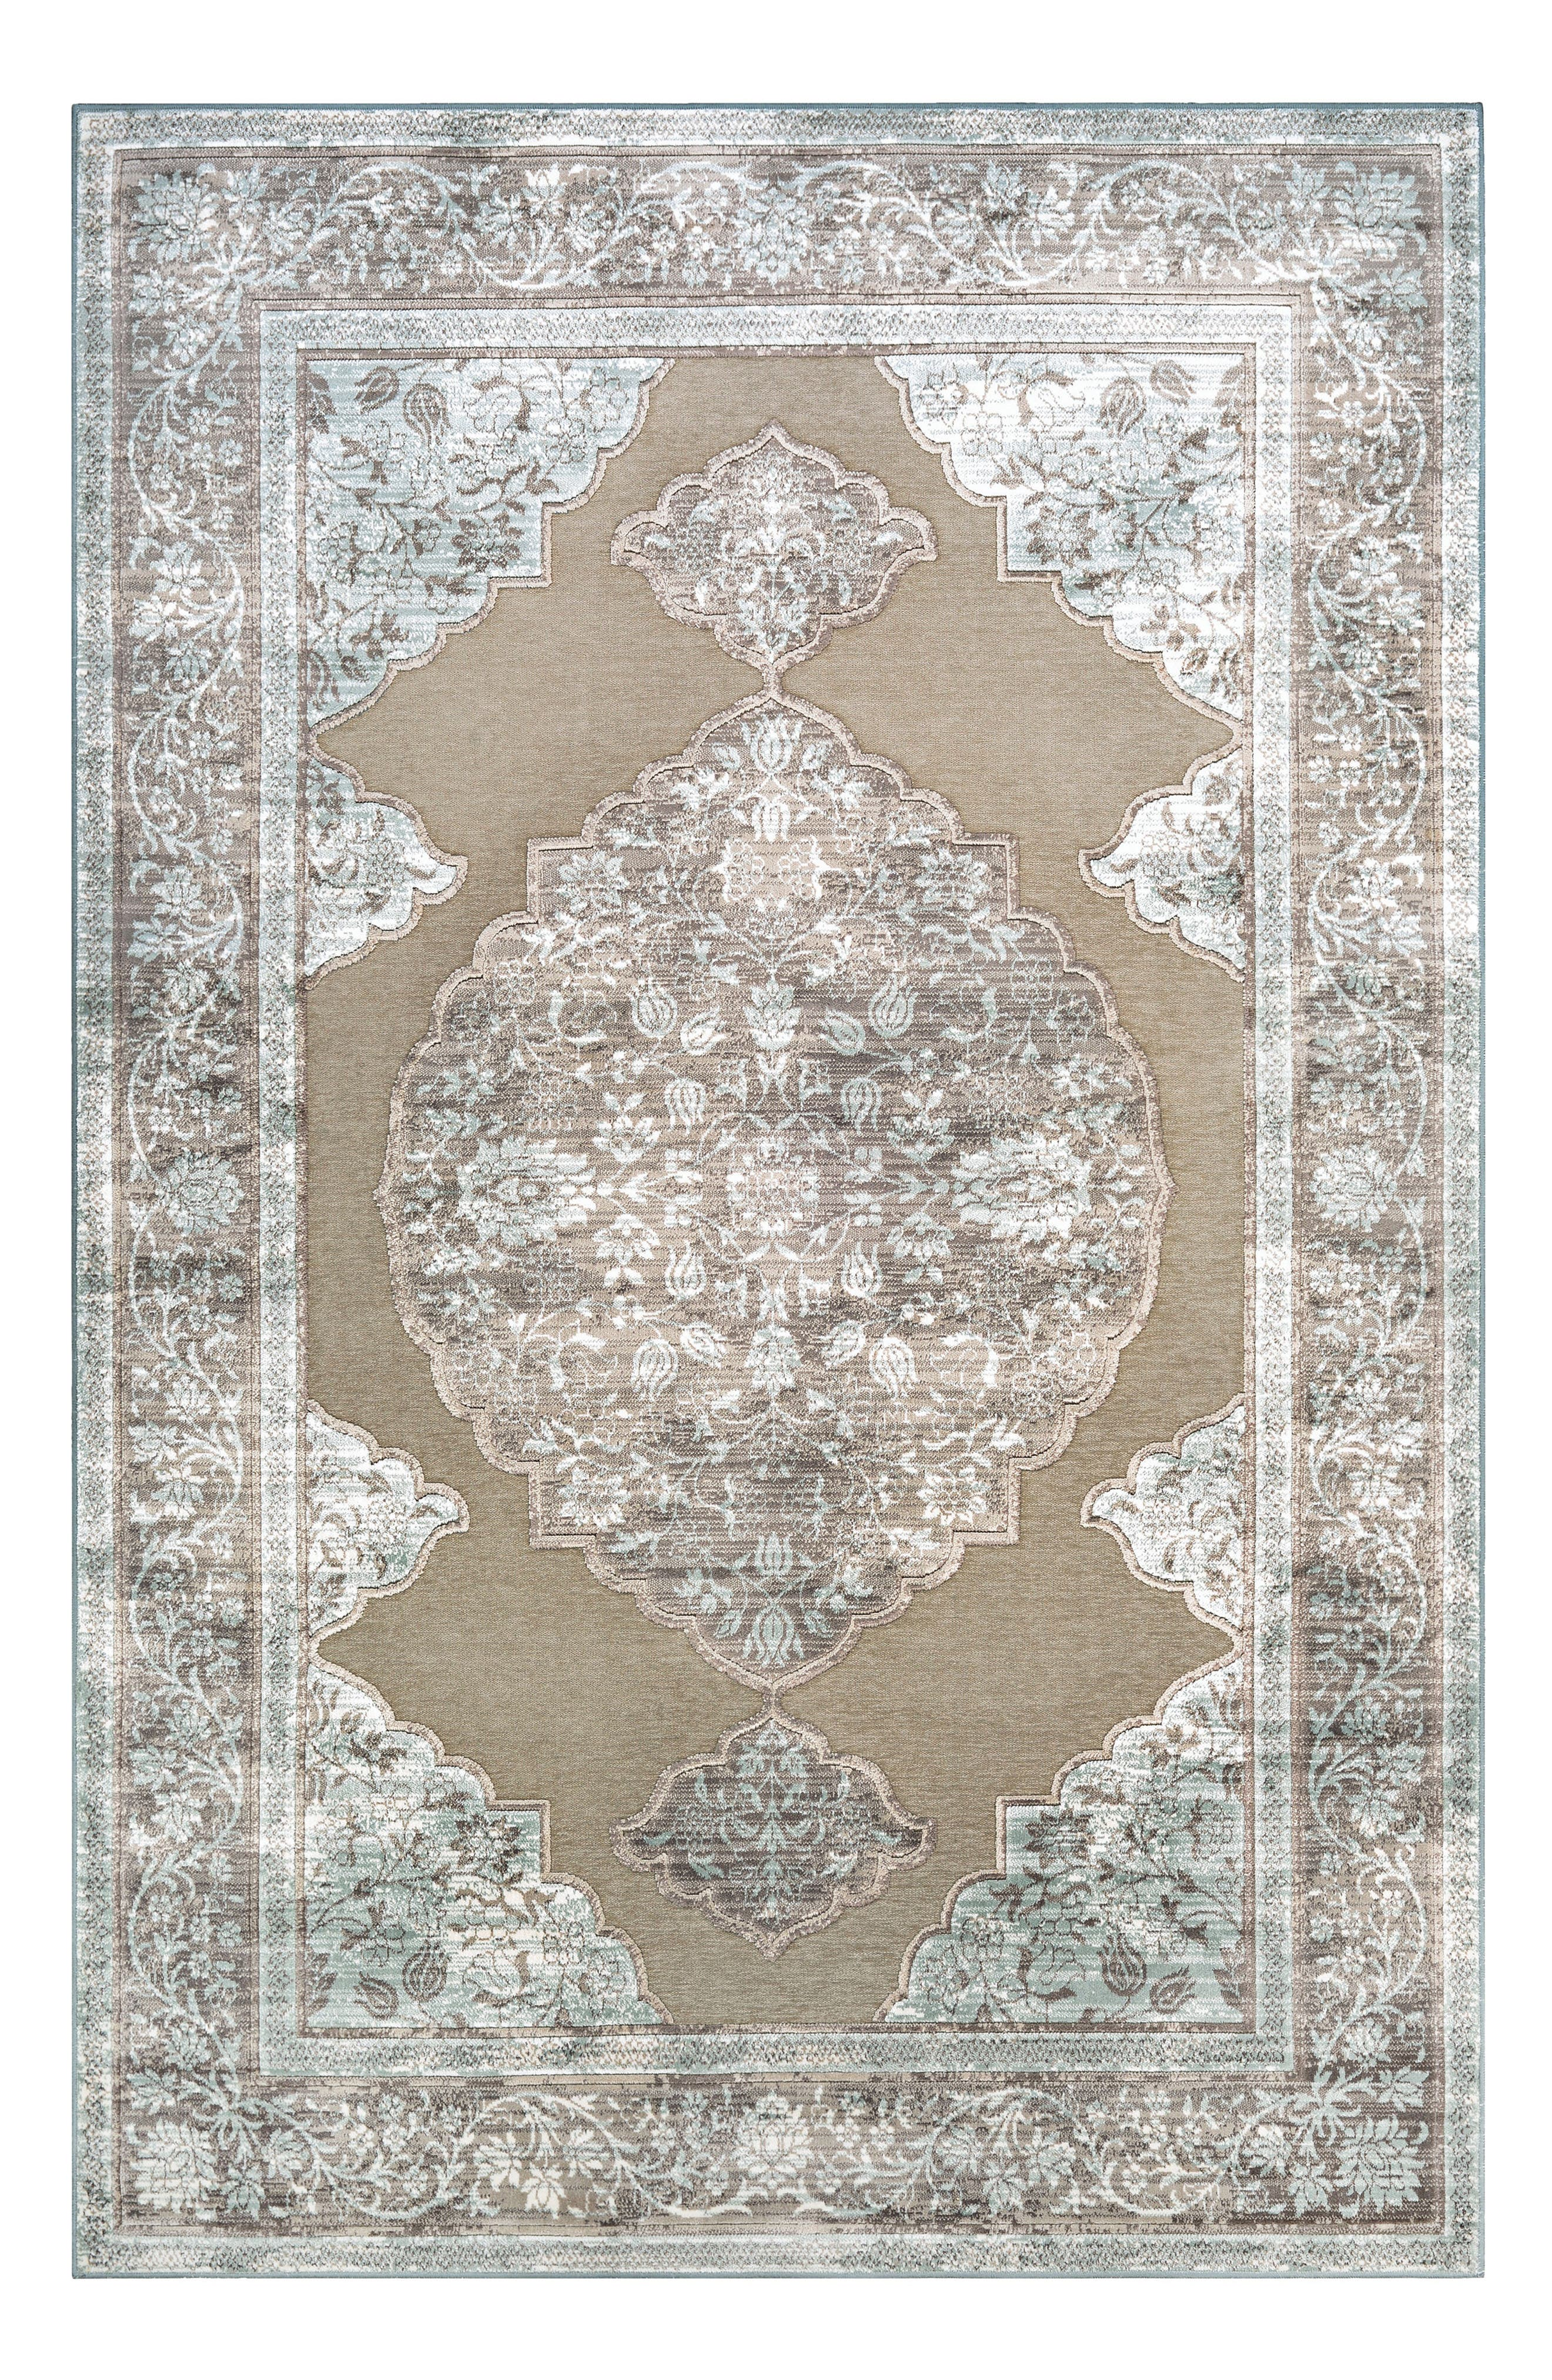 Cire Floral Medallion Area Rug,                         Main,                         color, Taupe